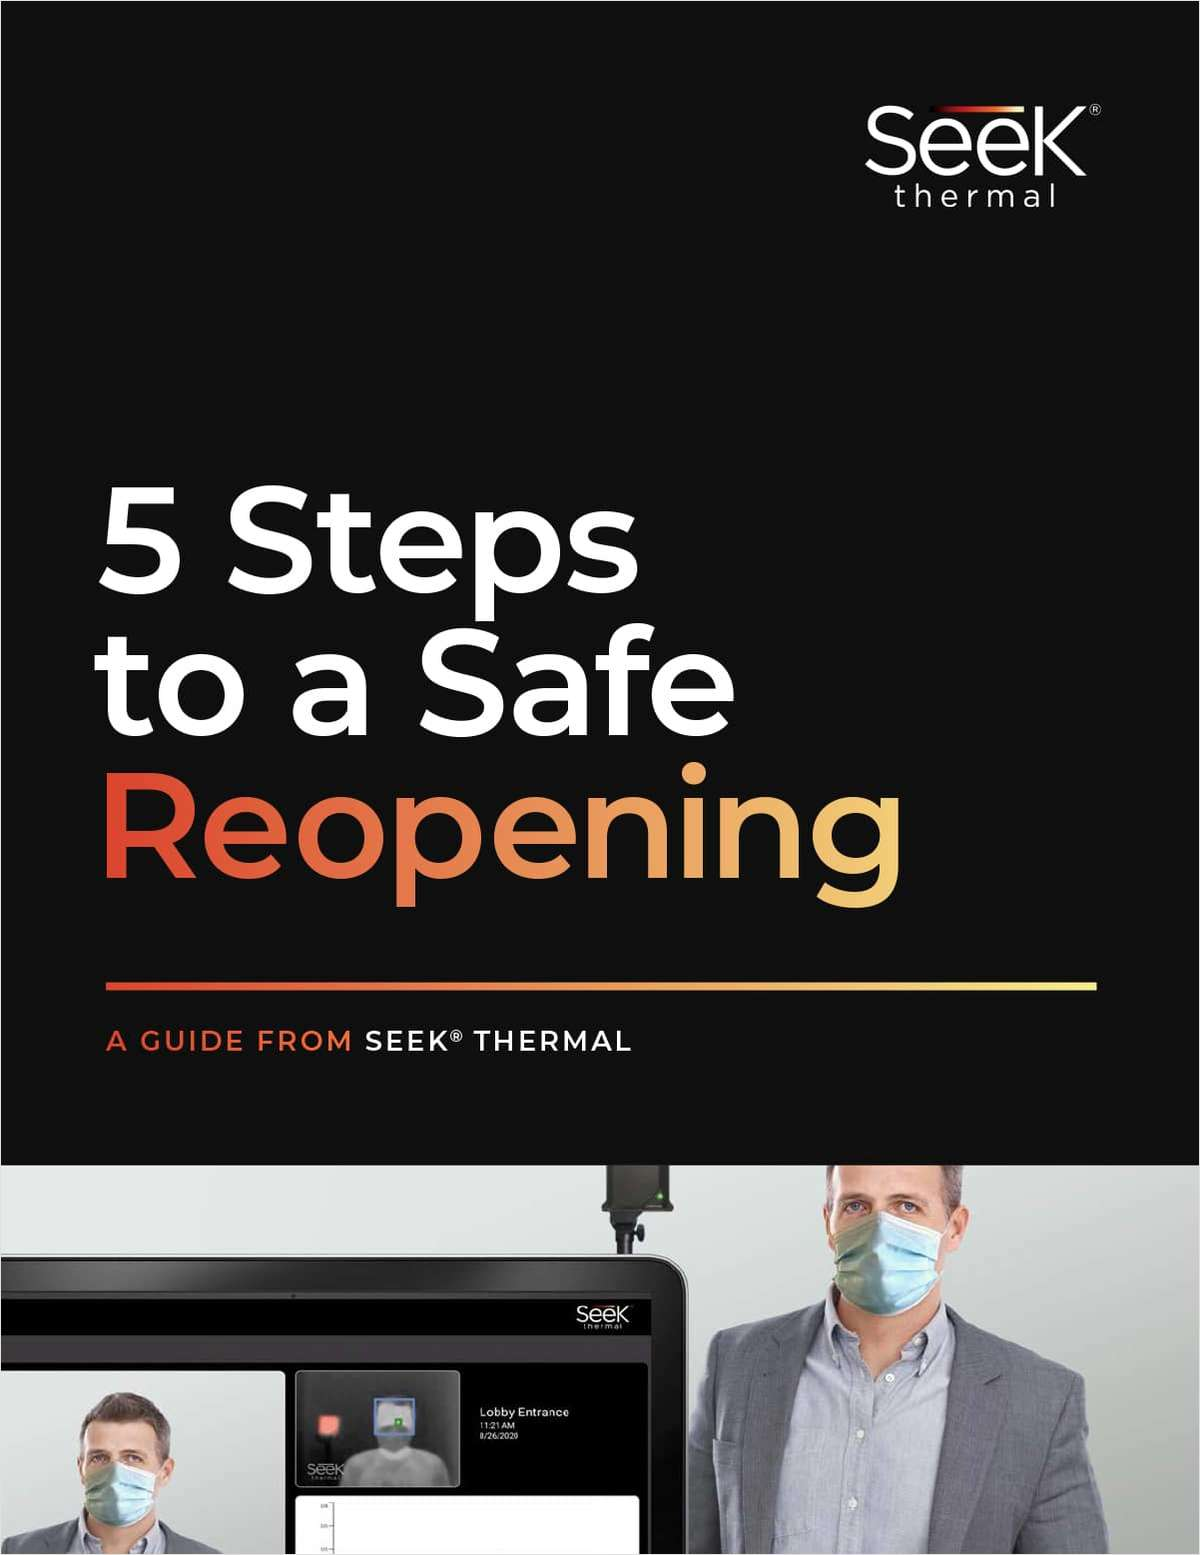 5 Steps to a Safe Reopening in 2021